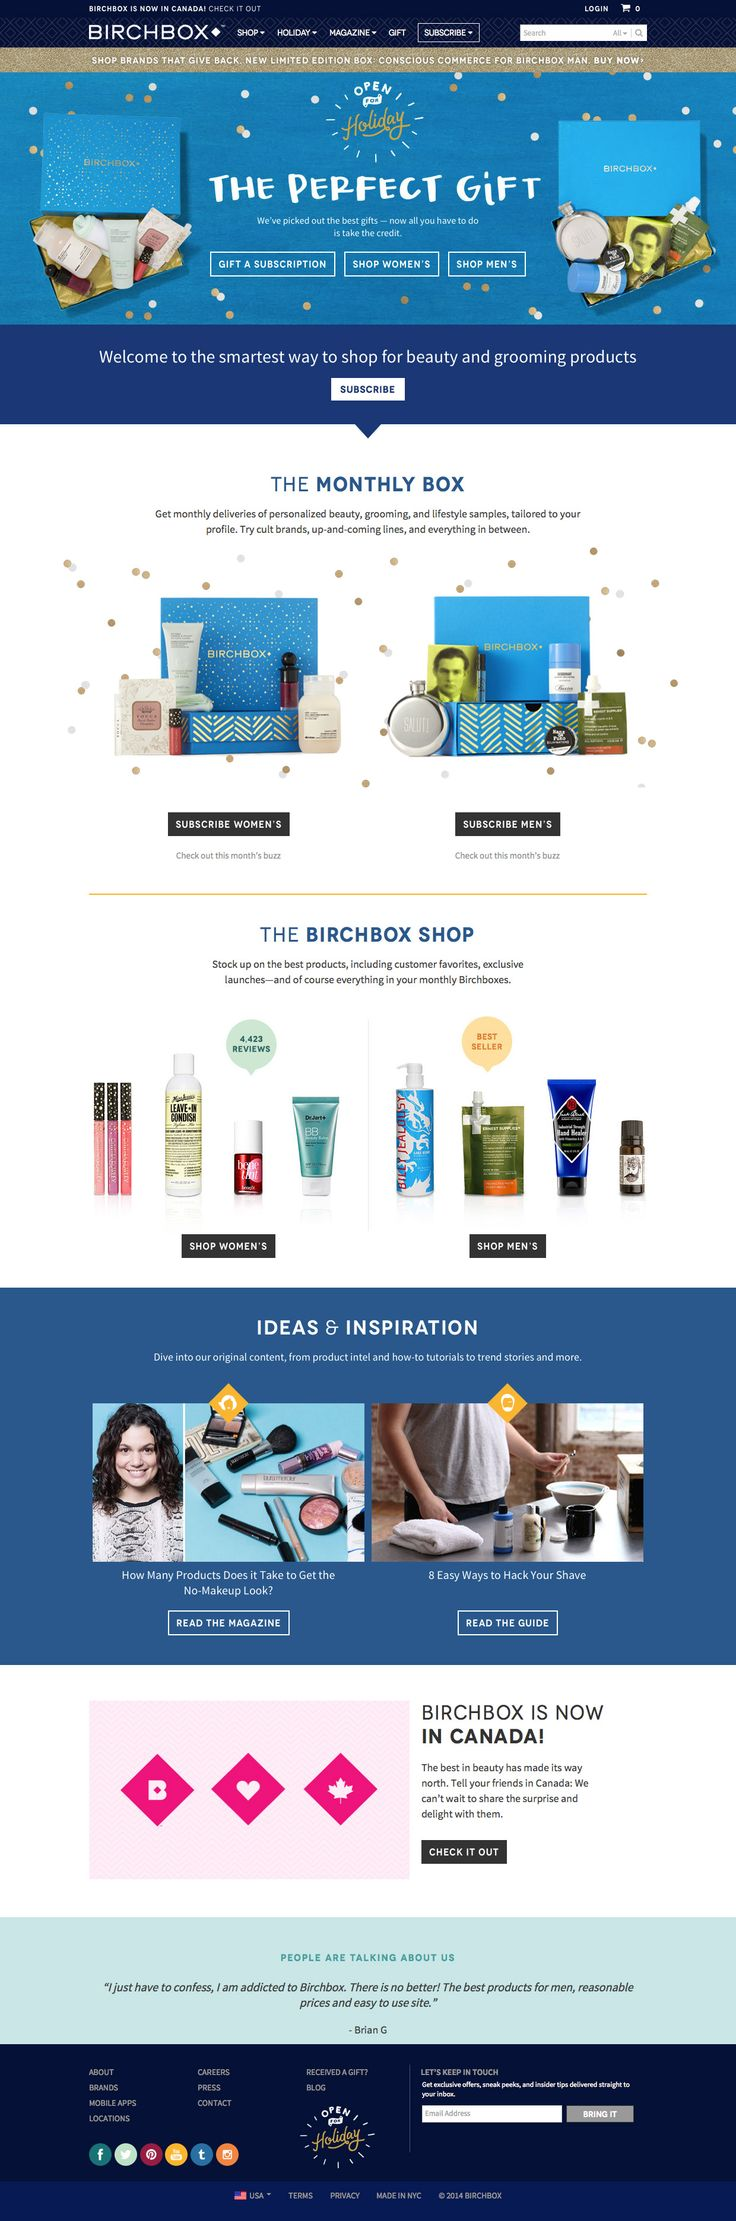 Birchbox Desktop Home Page Subscription sites are an interesting paradigm shift from regular once-off products. Given the bigger commitment they tend to try a little harder on communicating desire and impulse.  - http://www.cartrepublic.com/gallery/2014/12/birchbox-desktop-home-page/